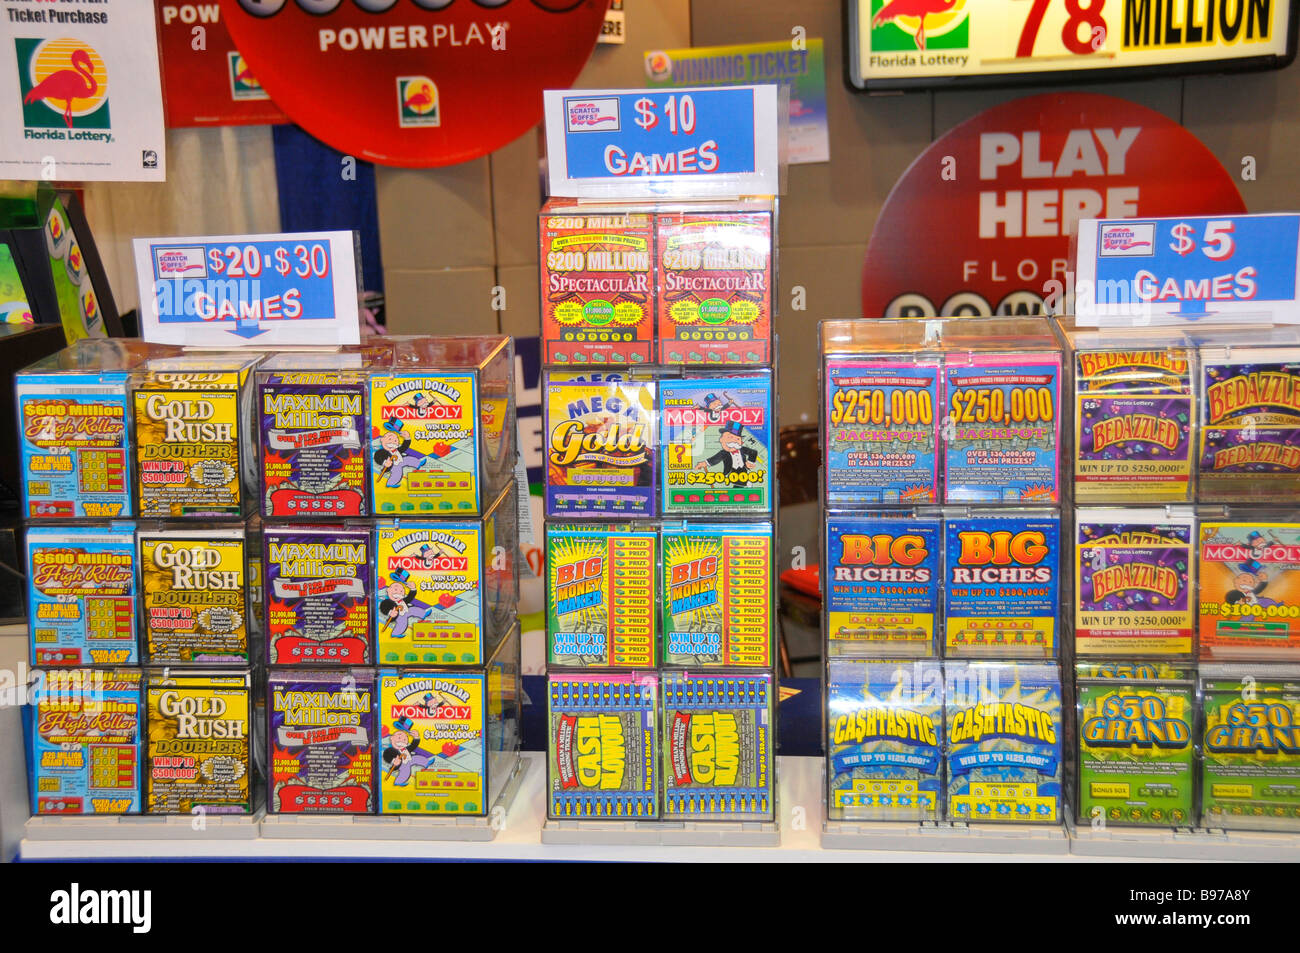 Florida Lottery Tickets Display at Florida State Fairgrounds Tampa - Stock Image